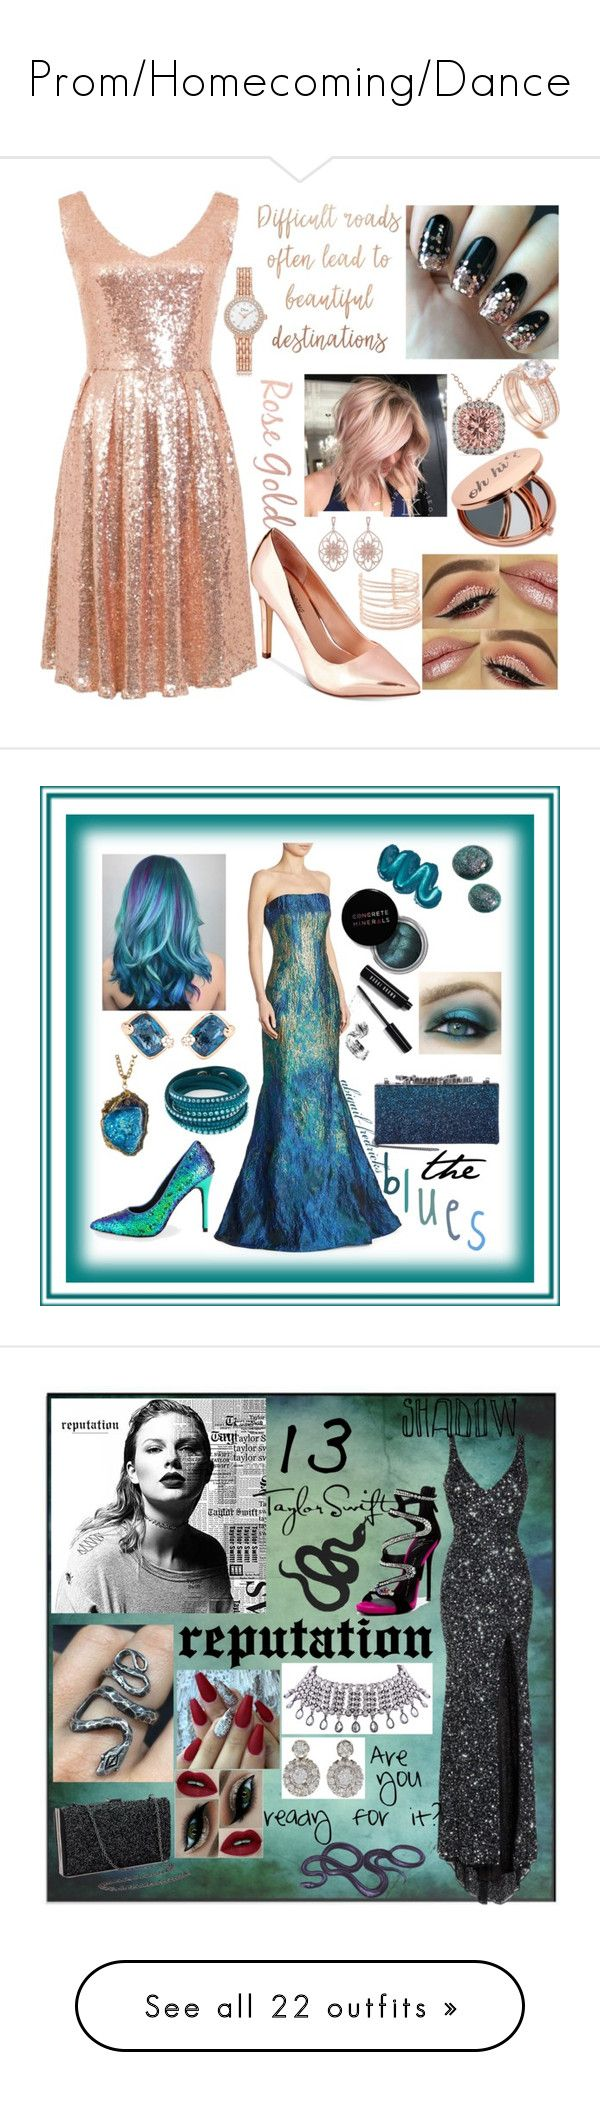 """Prom/Homecoming/Dance"" by abigail-fredricks ❤ liked on Polyvore featuring Allurez, Alexis Bittar, Call it SPRING, Miss Selfridge, Latelita, Rene Ruiz, Pomellato, Mermaid Salon, Bobbi Brown Cosmetics and Jimmy Choo"